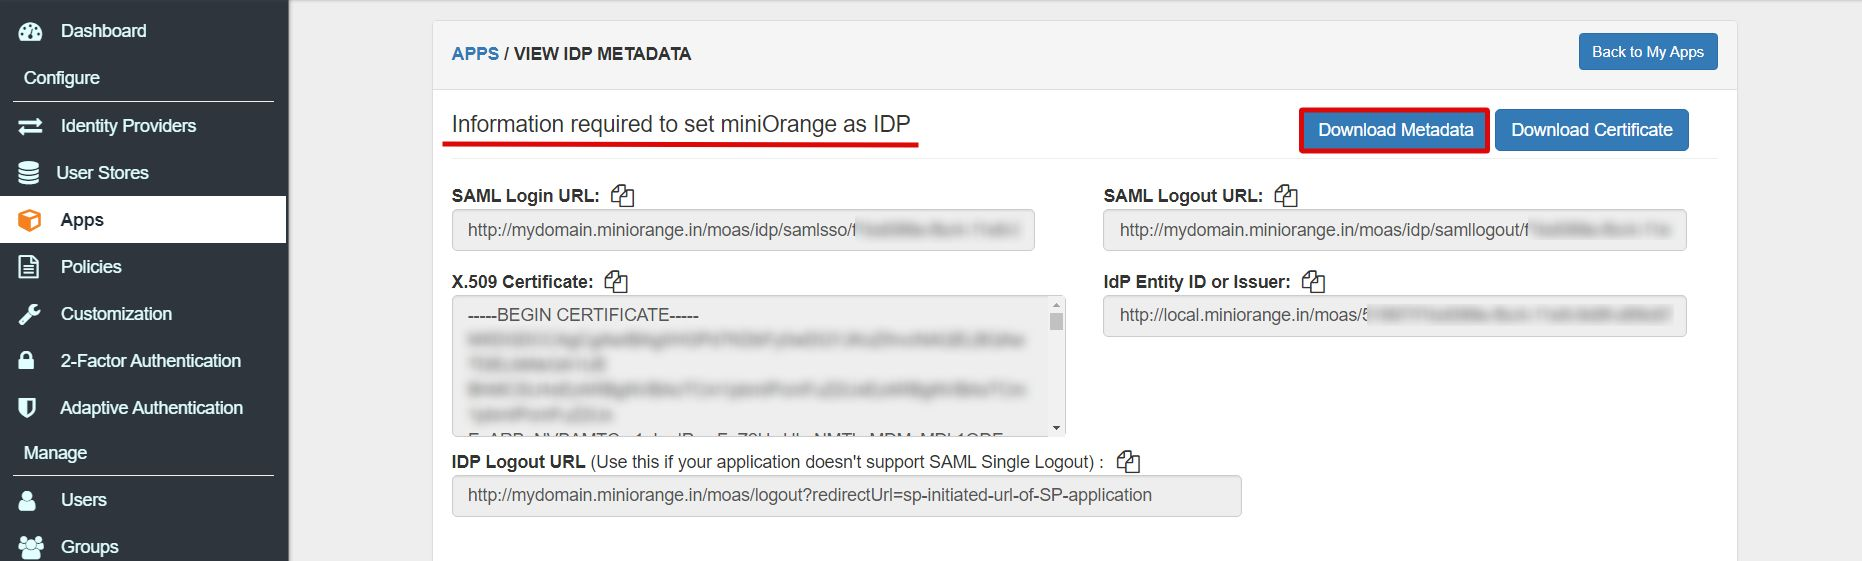 SAML metadata window Single Sign On for SAML Apps